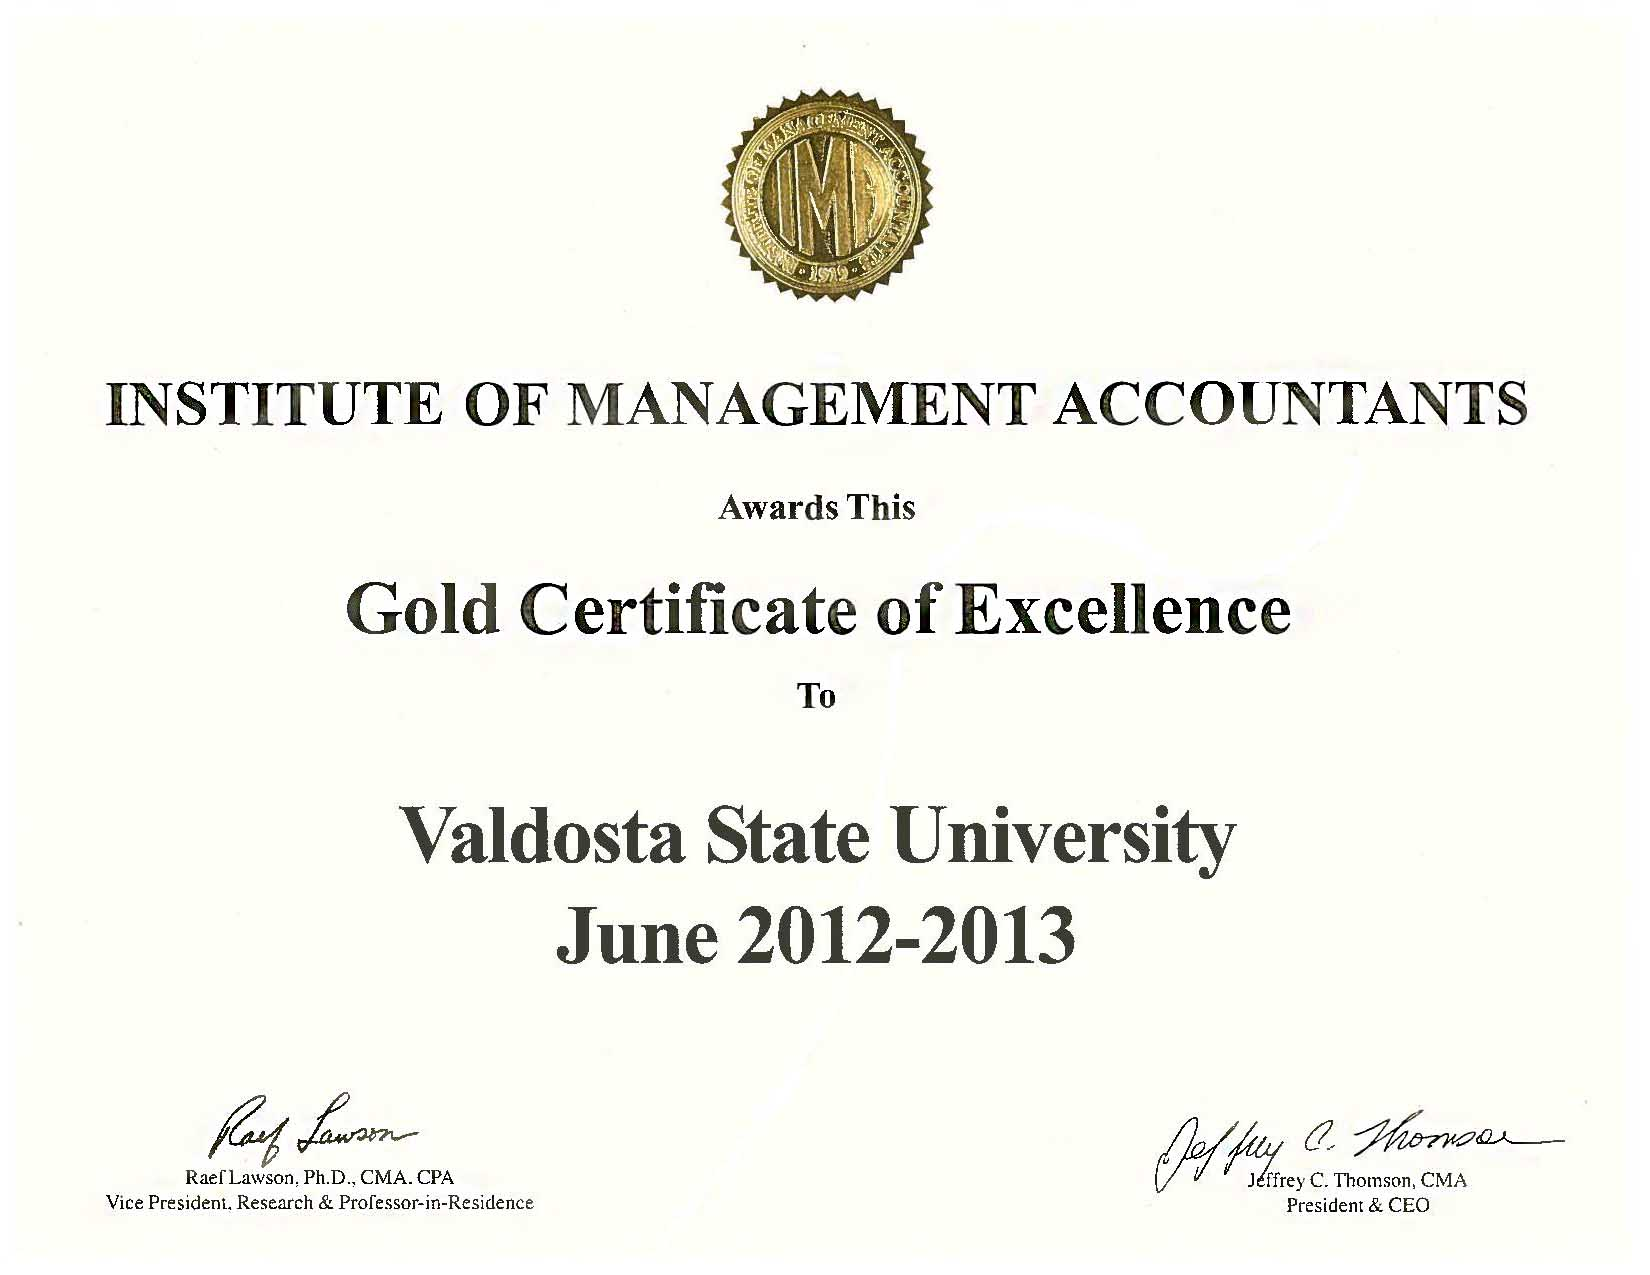 Golden Certificate of Excellence